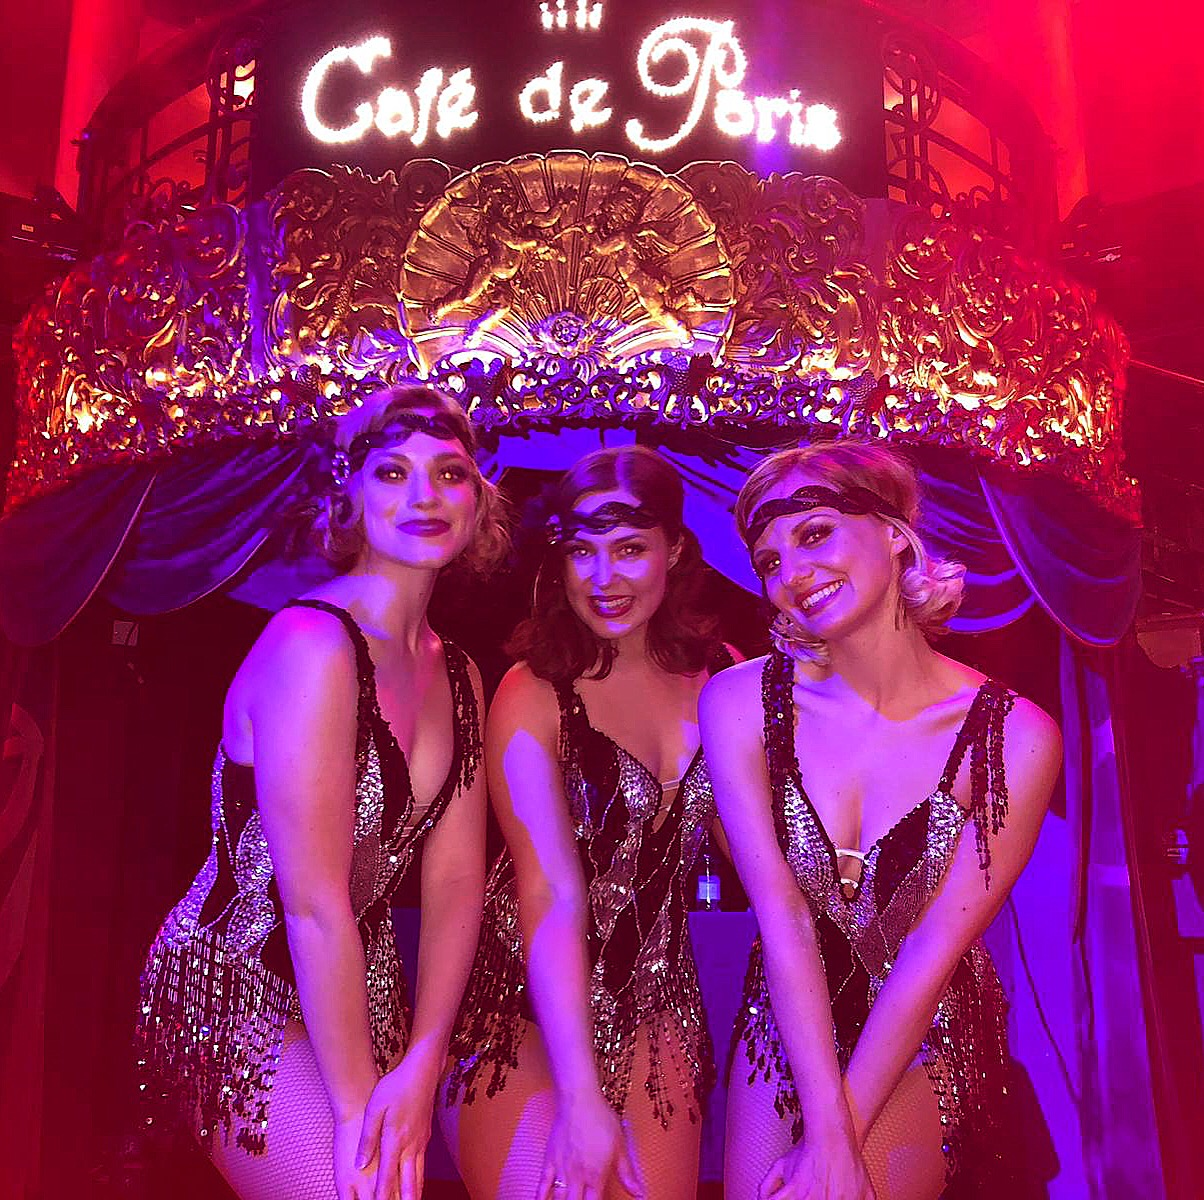 Café de Paris, London